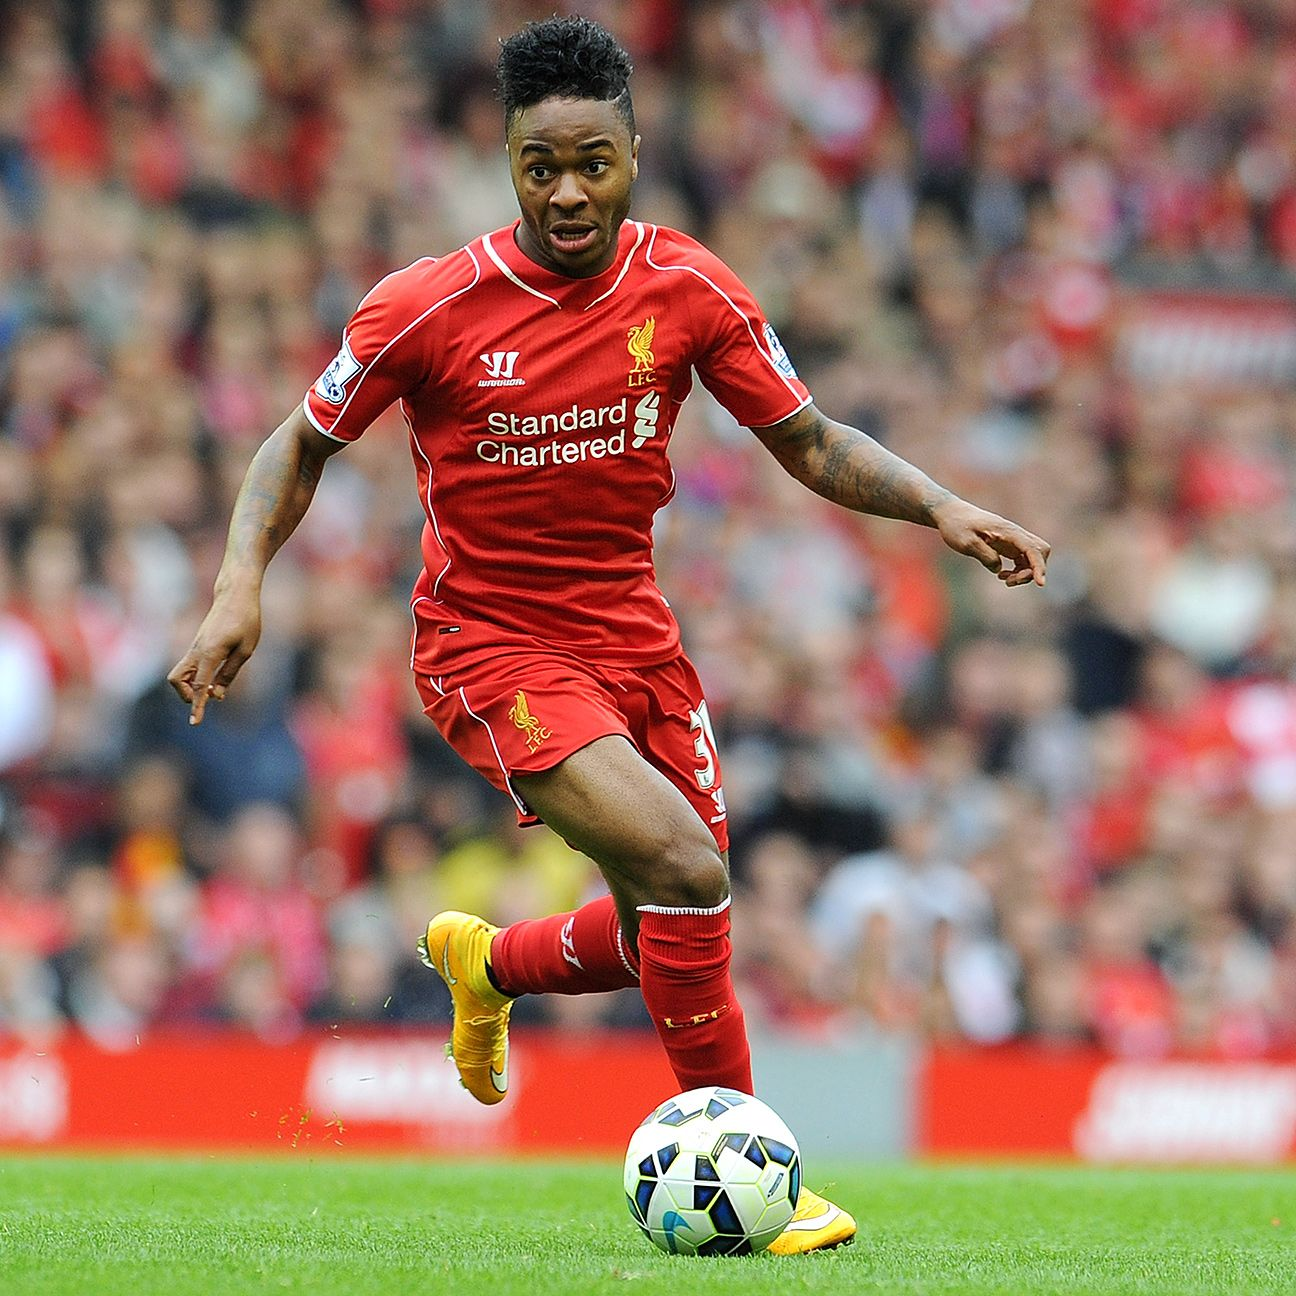 Manchester United will have to be on alert whenever Liverpool's Raheem Sterling is on the ball.